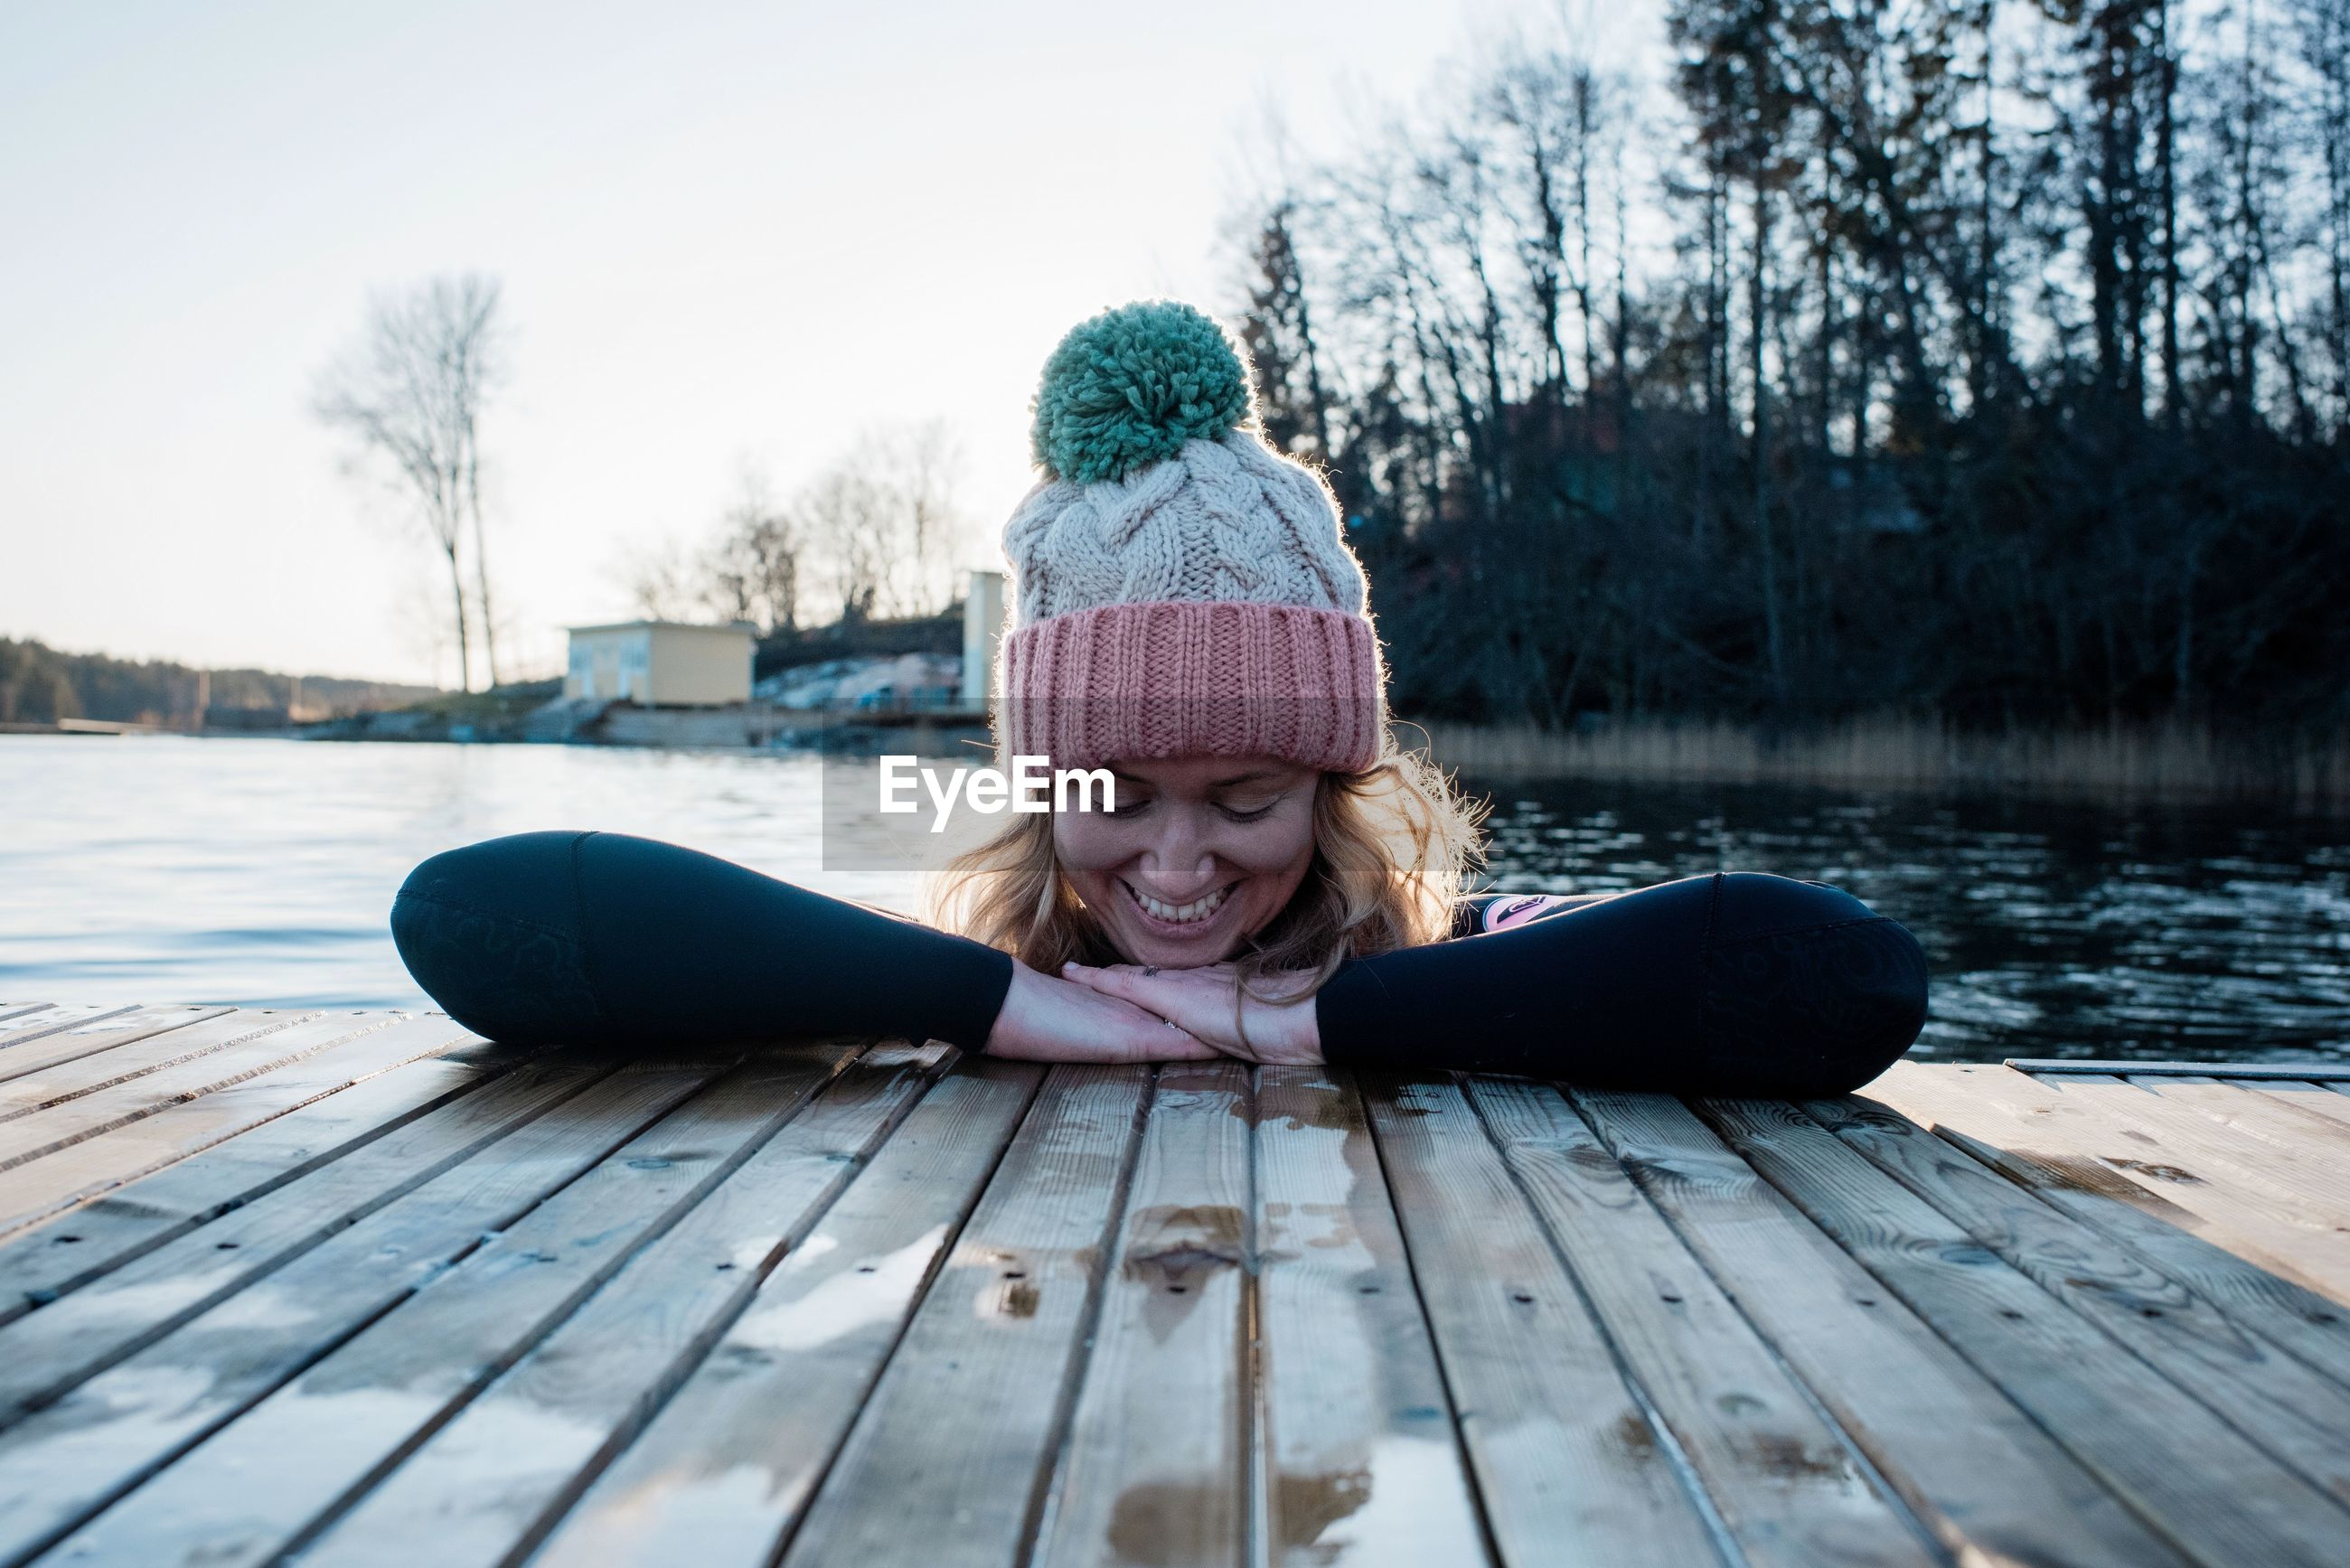 WOMAN SITTING ON WOOD BY LAKE AGAINST TREES DURING WINTER